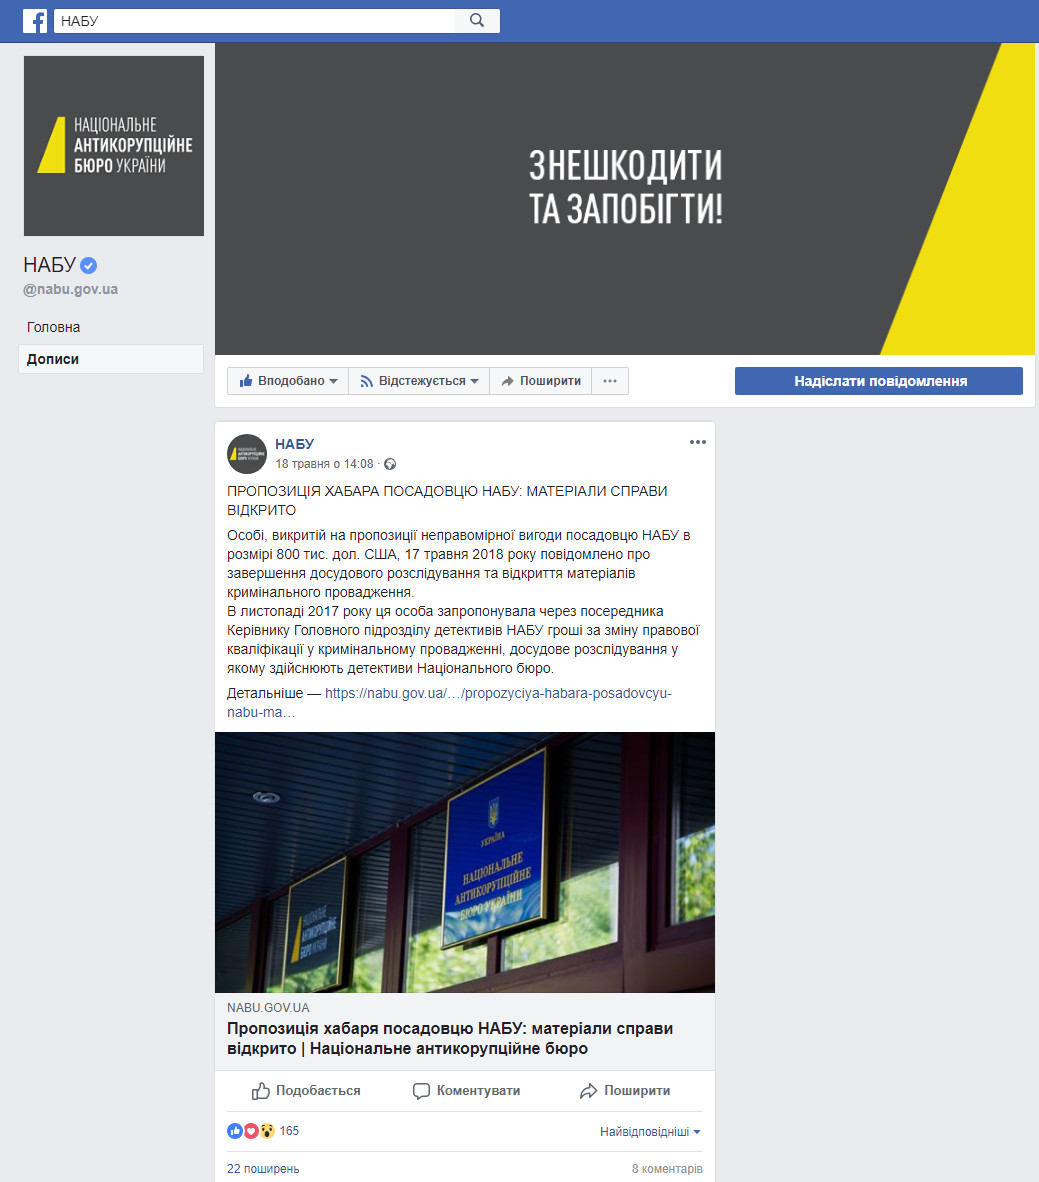 https://www.facebook.com/nabu.gov.ua/posts/2102235456688796